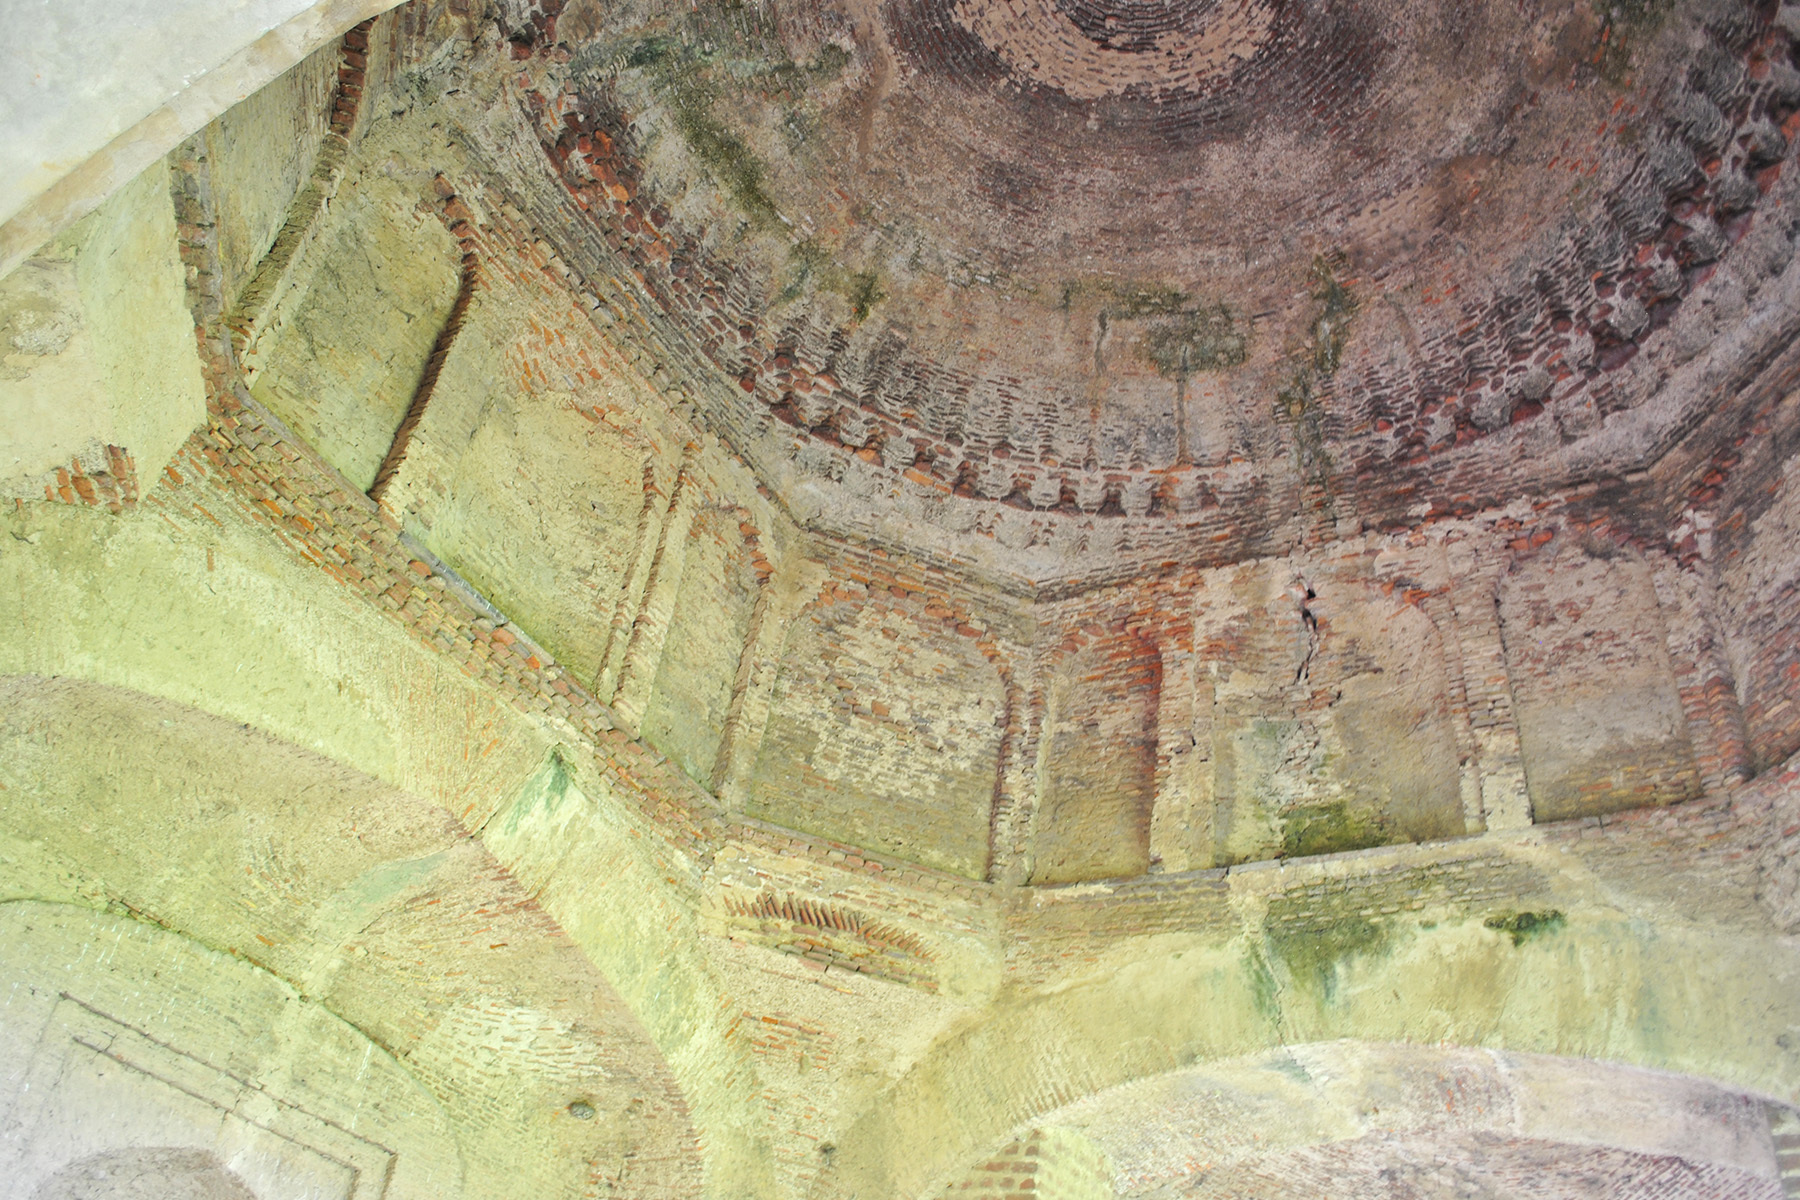 The fine cut-brick work on the interior of the dome is a unique feature of the mosque.